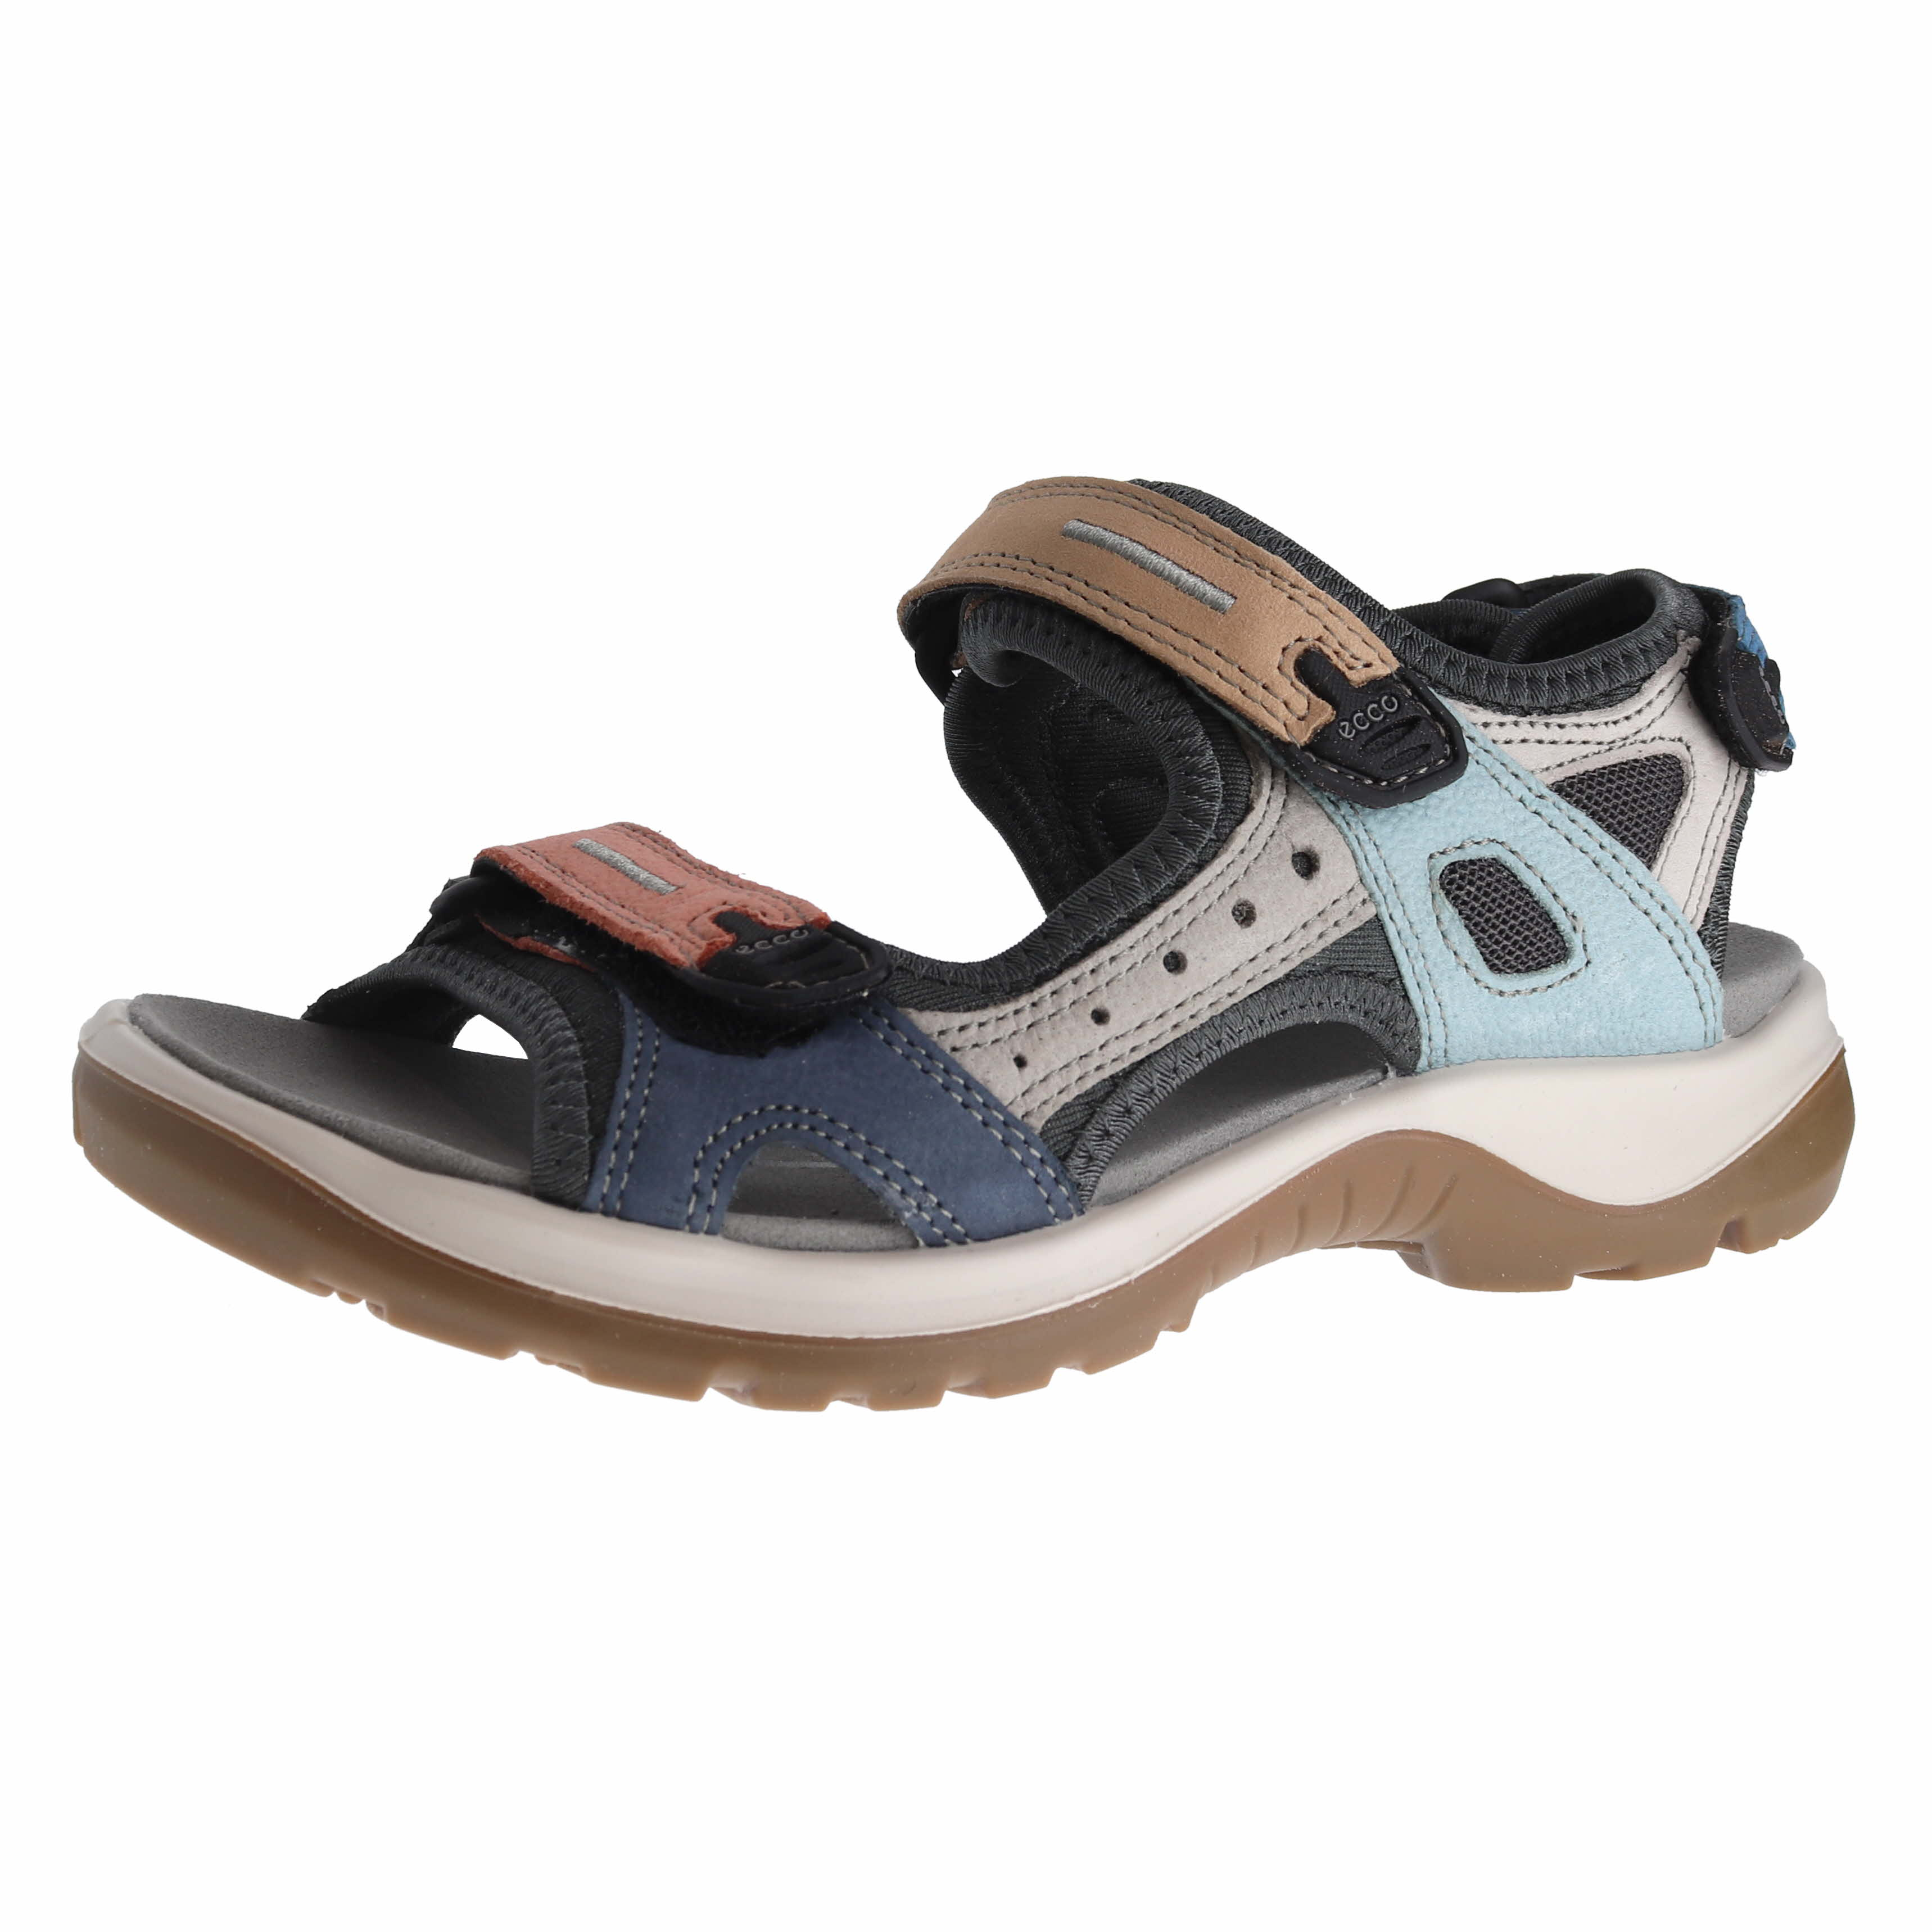 7db5b2b7ee90 Details about Ecco Offroad Yucatan Multicolor Womens Sport Sandals Size 36M